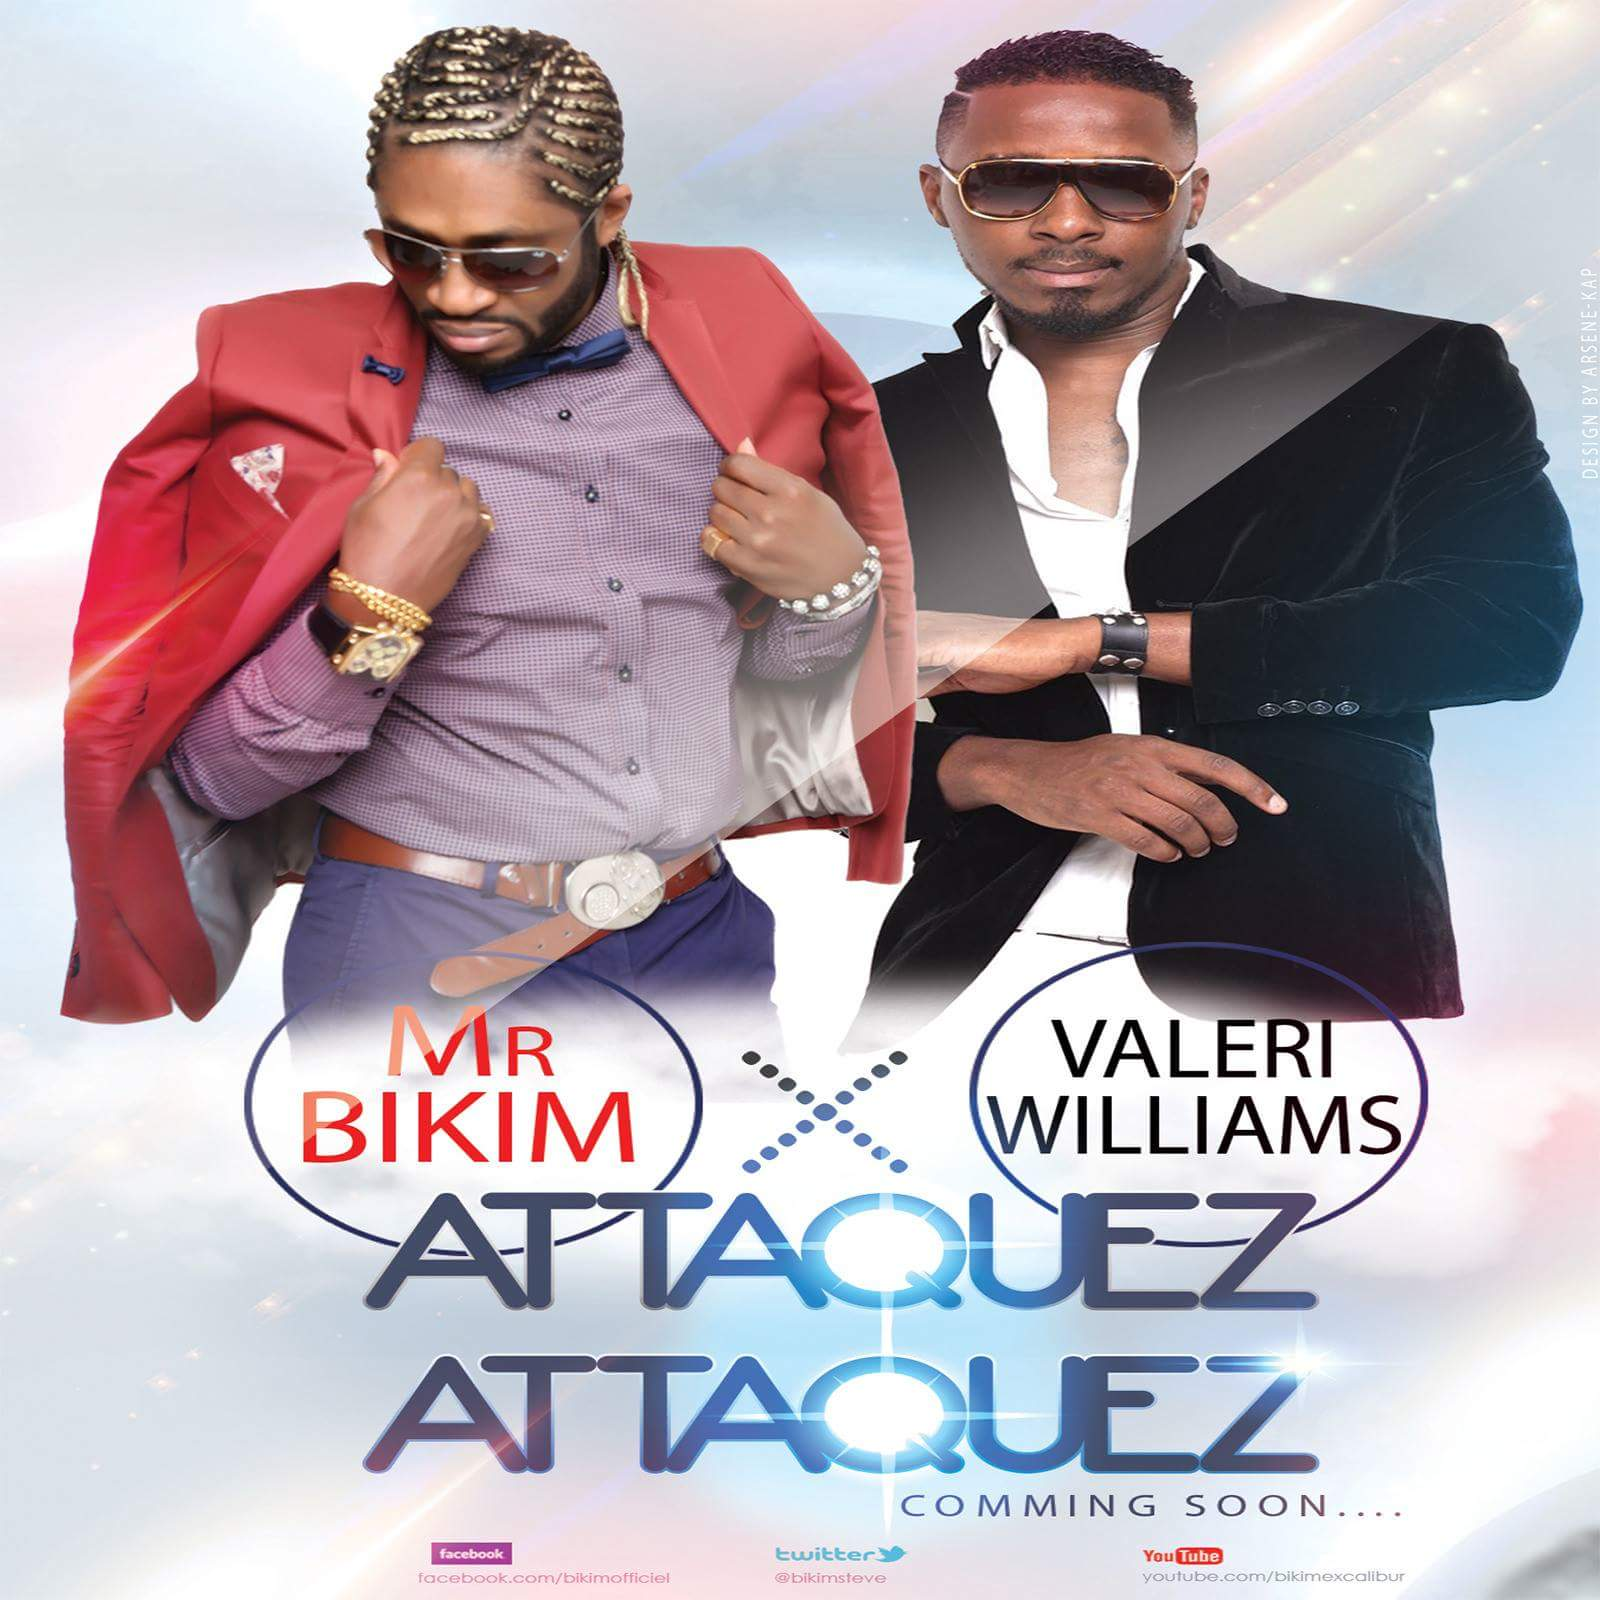 Mr BIKIM FEAT VALERI WILLIAMS - ATTAQUEZ ATTAQUEZ